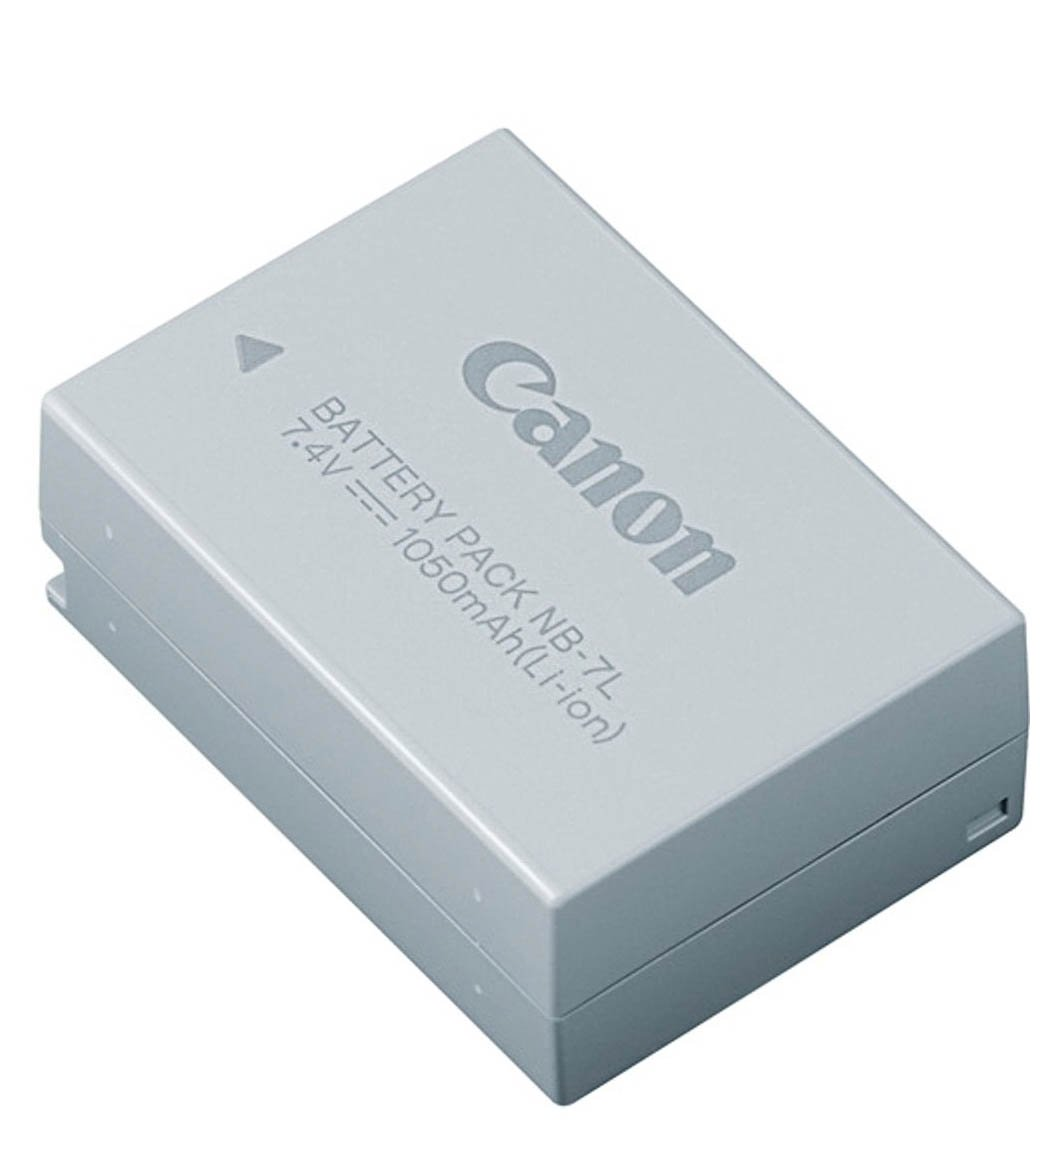 Canon Powershot G12 Battery